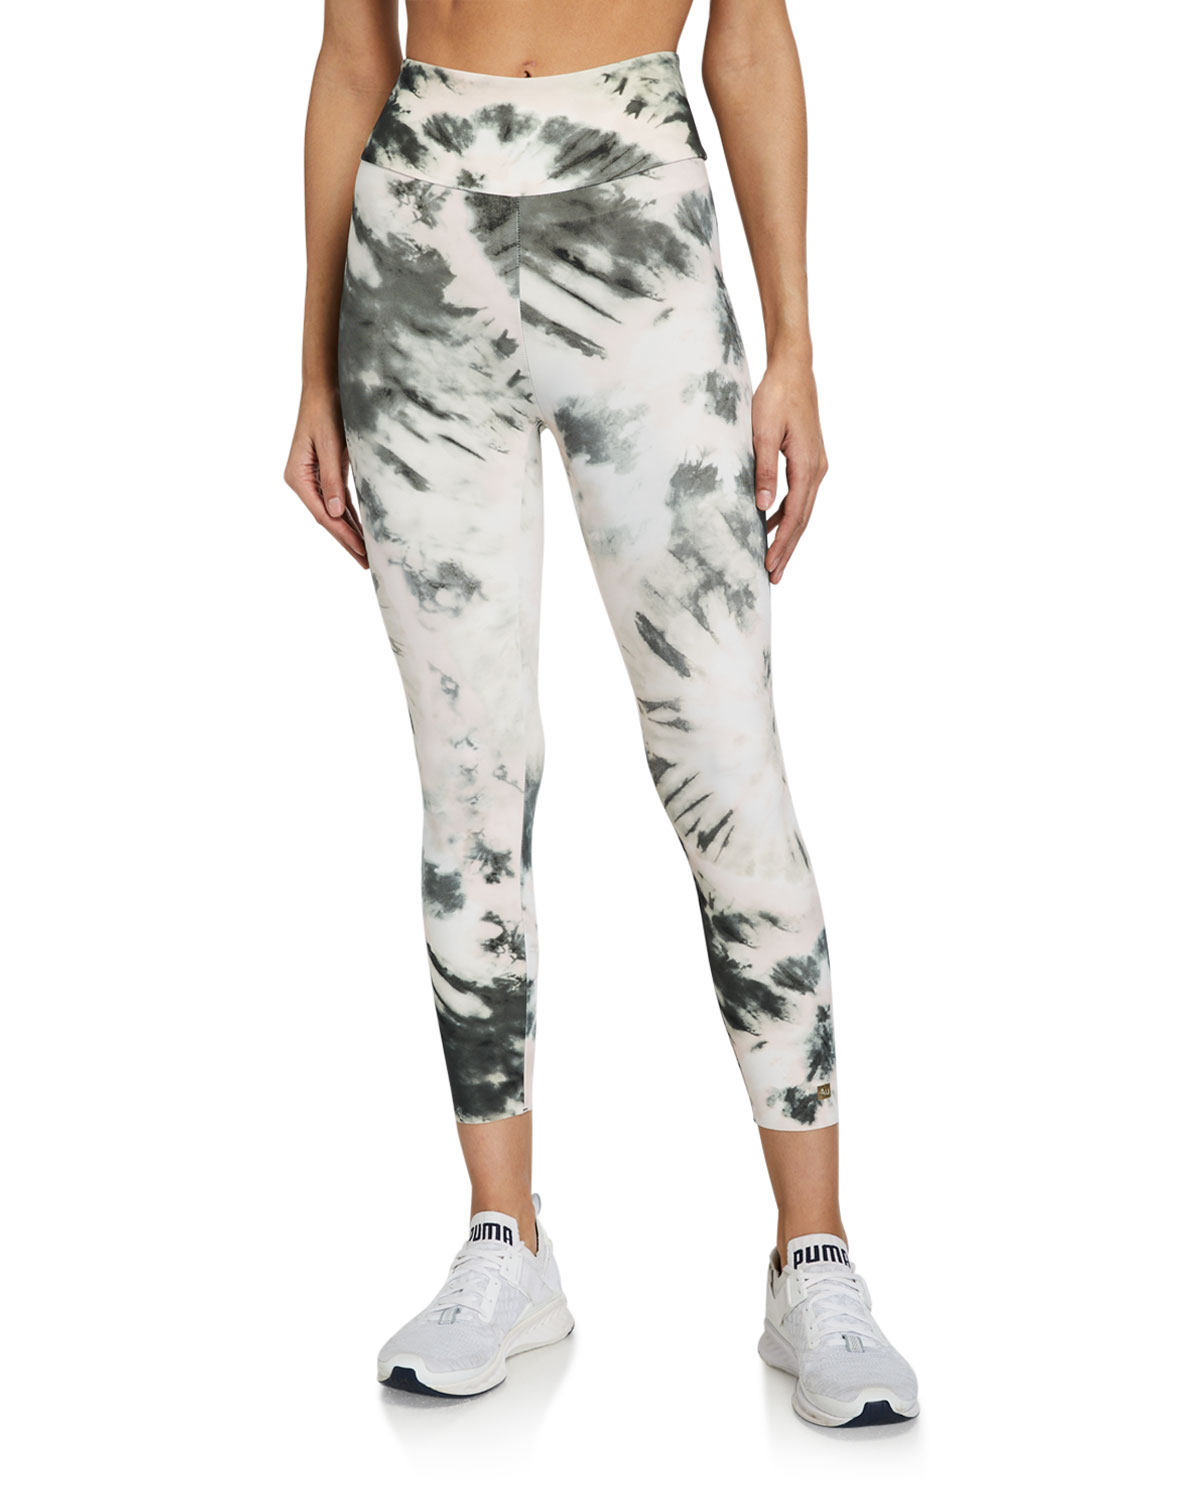 Aurum Nebula Tie-Dye High-Waist Active Leggings